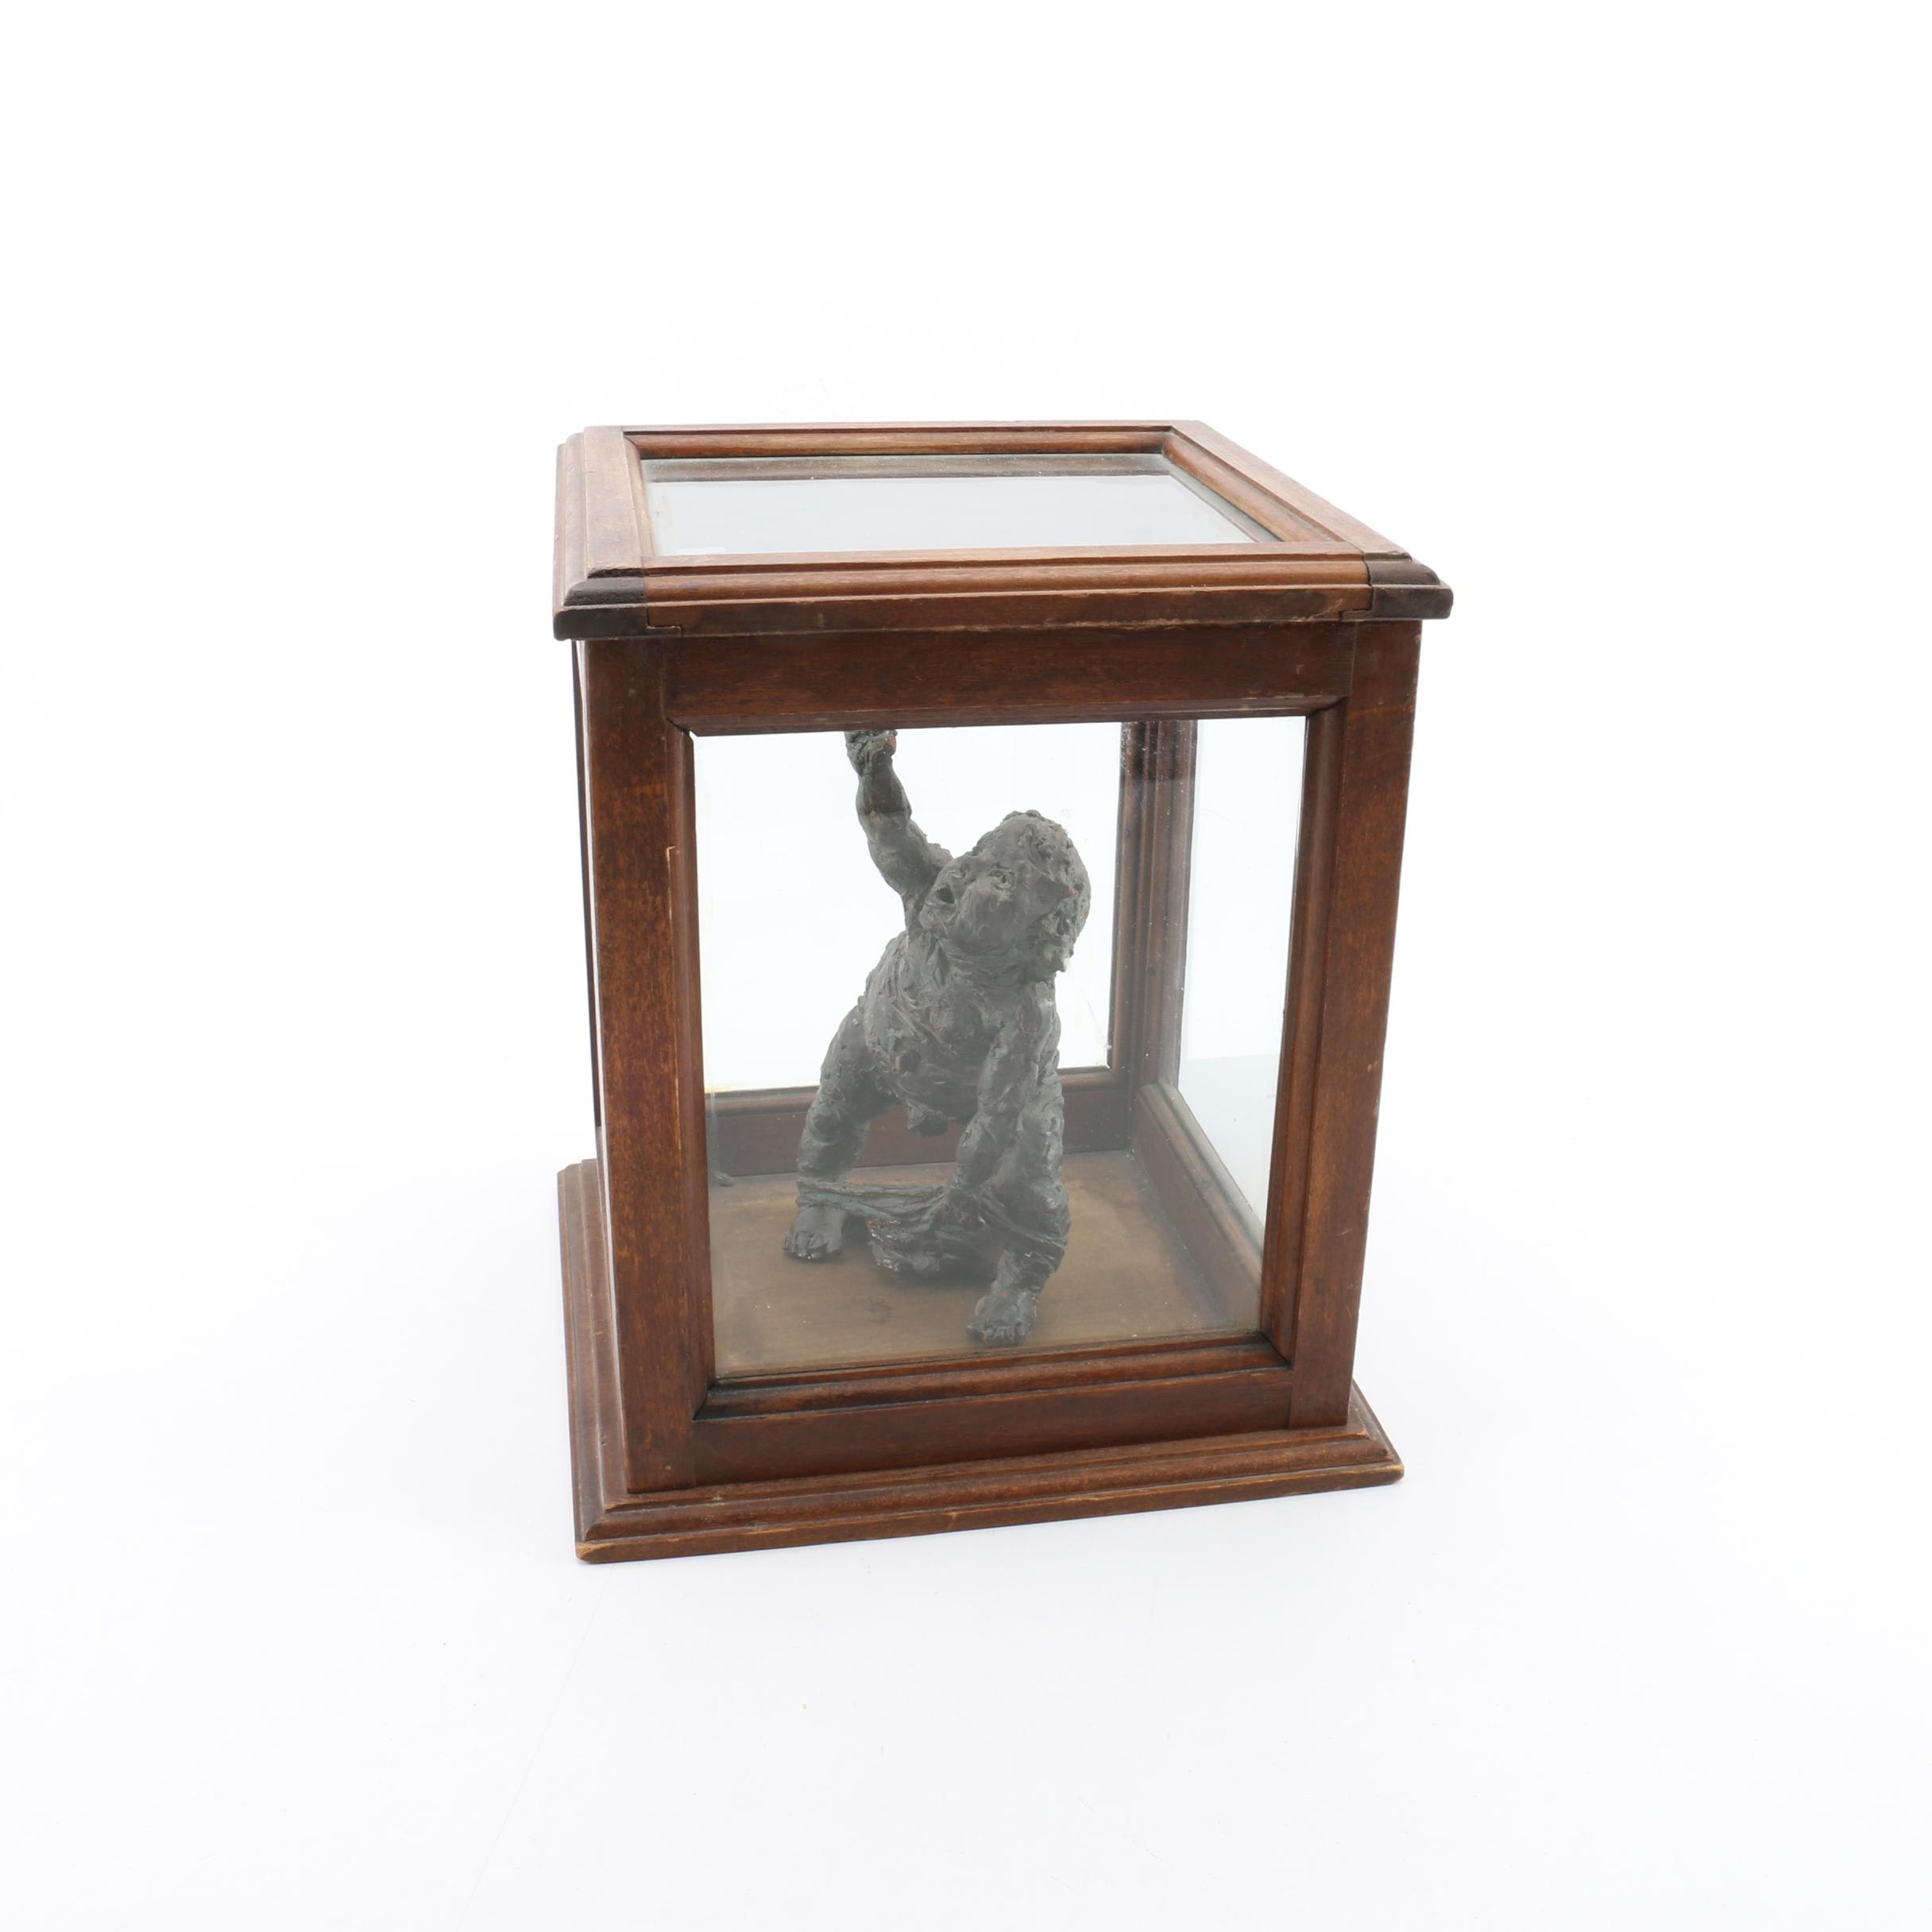 Ceramic Sculpture with Display Case